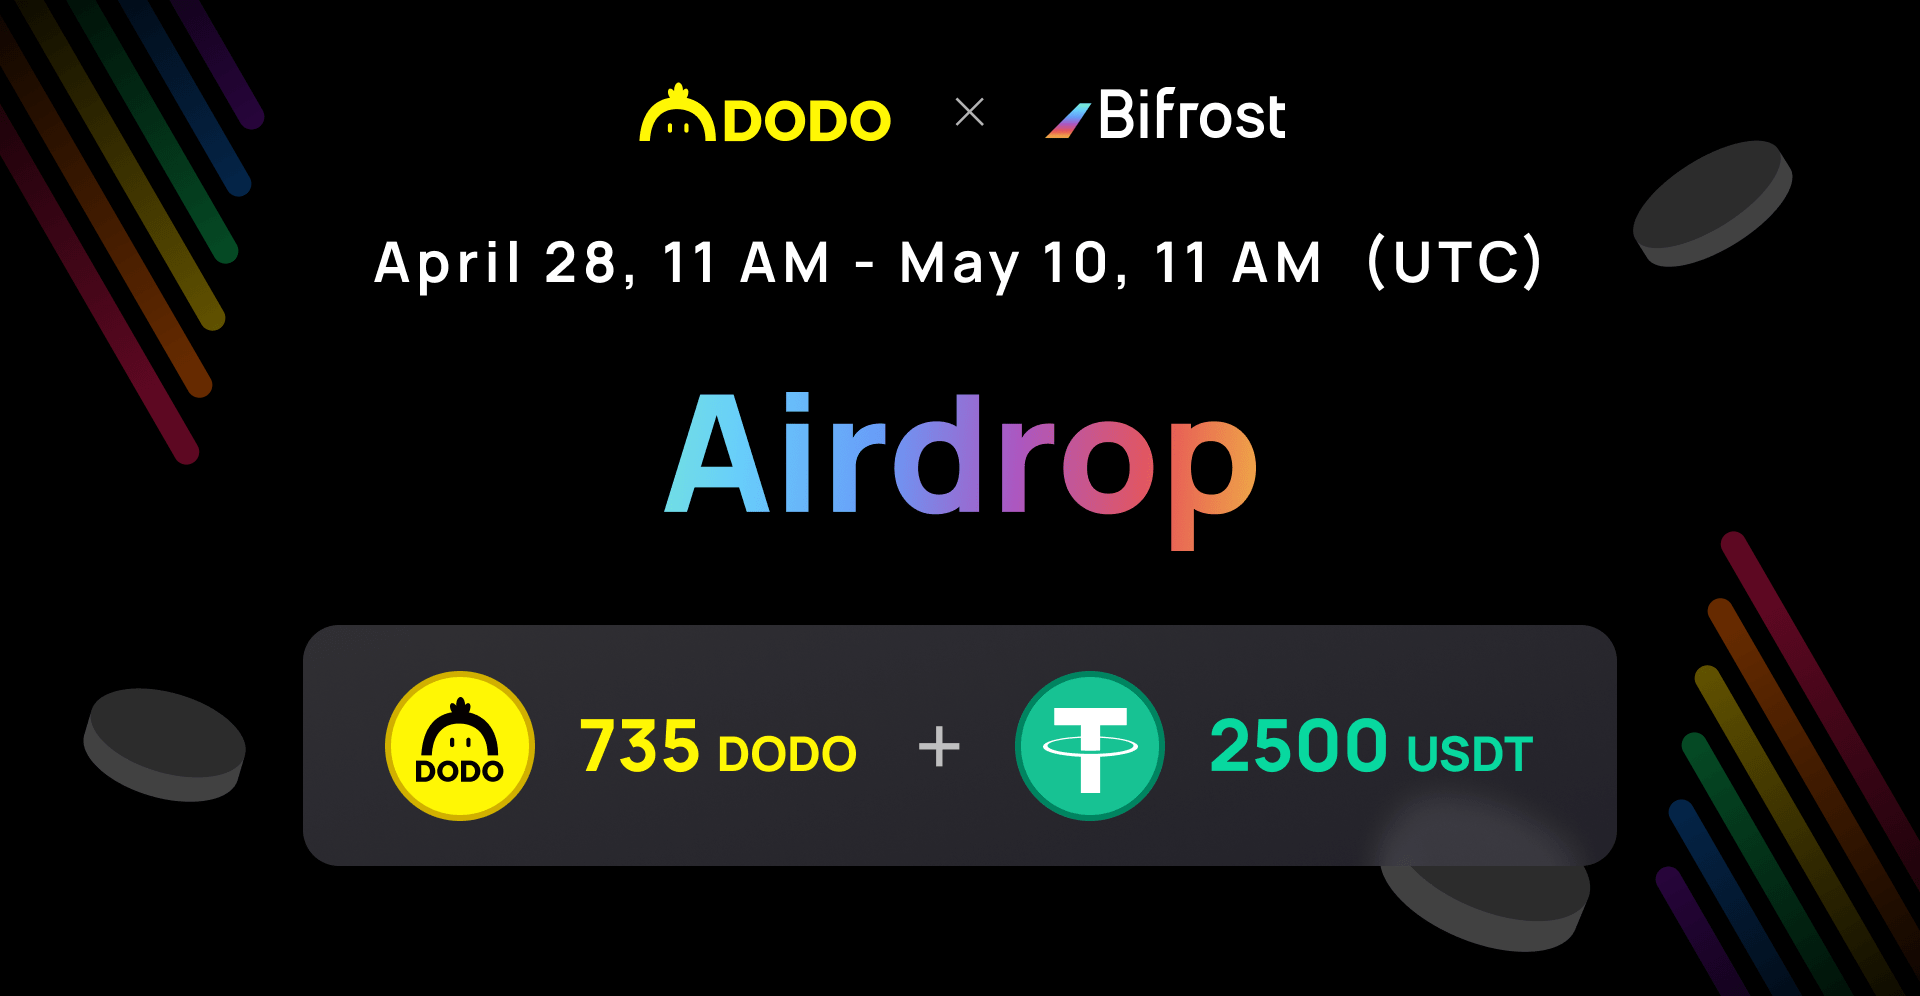 DODO x Bifrost Airdrop ~ $5,000 in USDT and the DODO token among 800 participants Giveaway Image